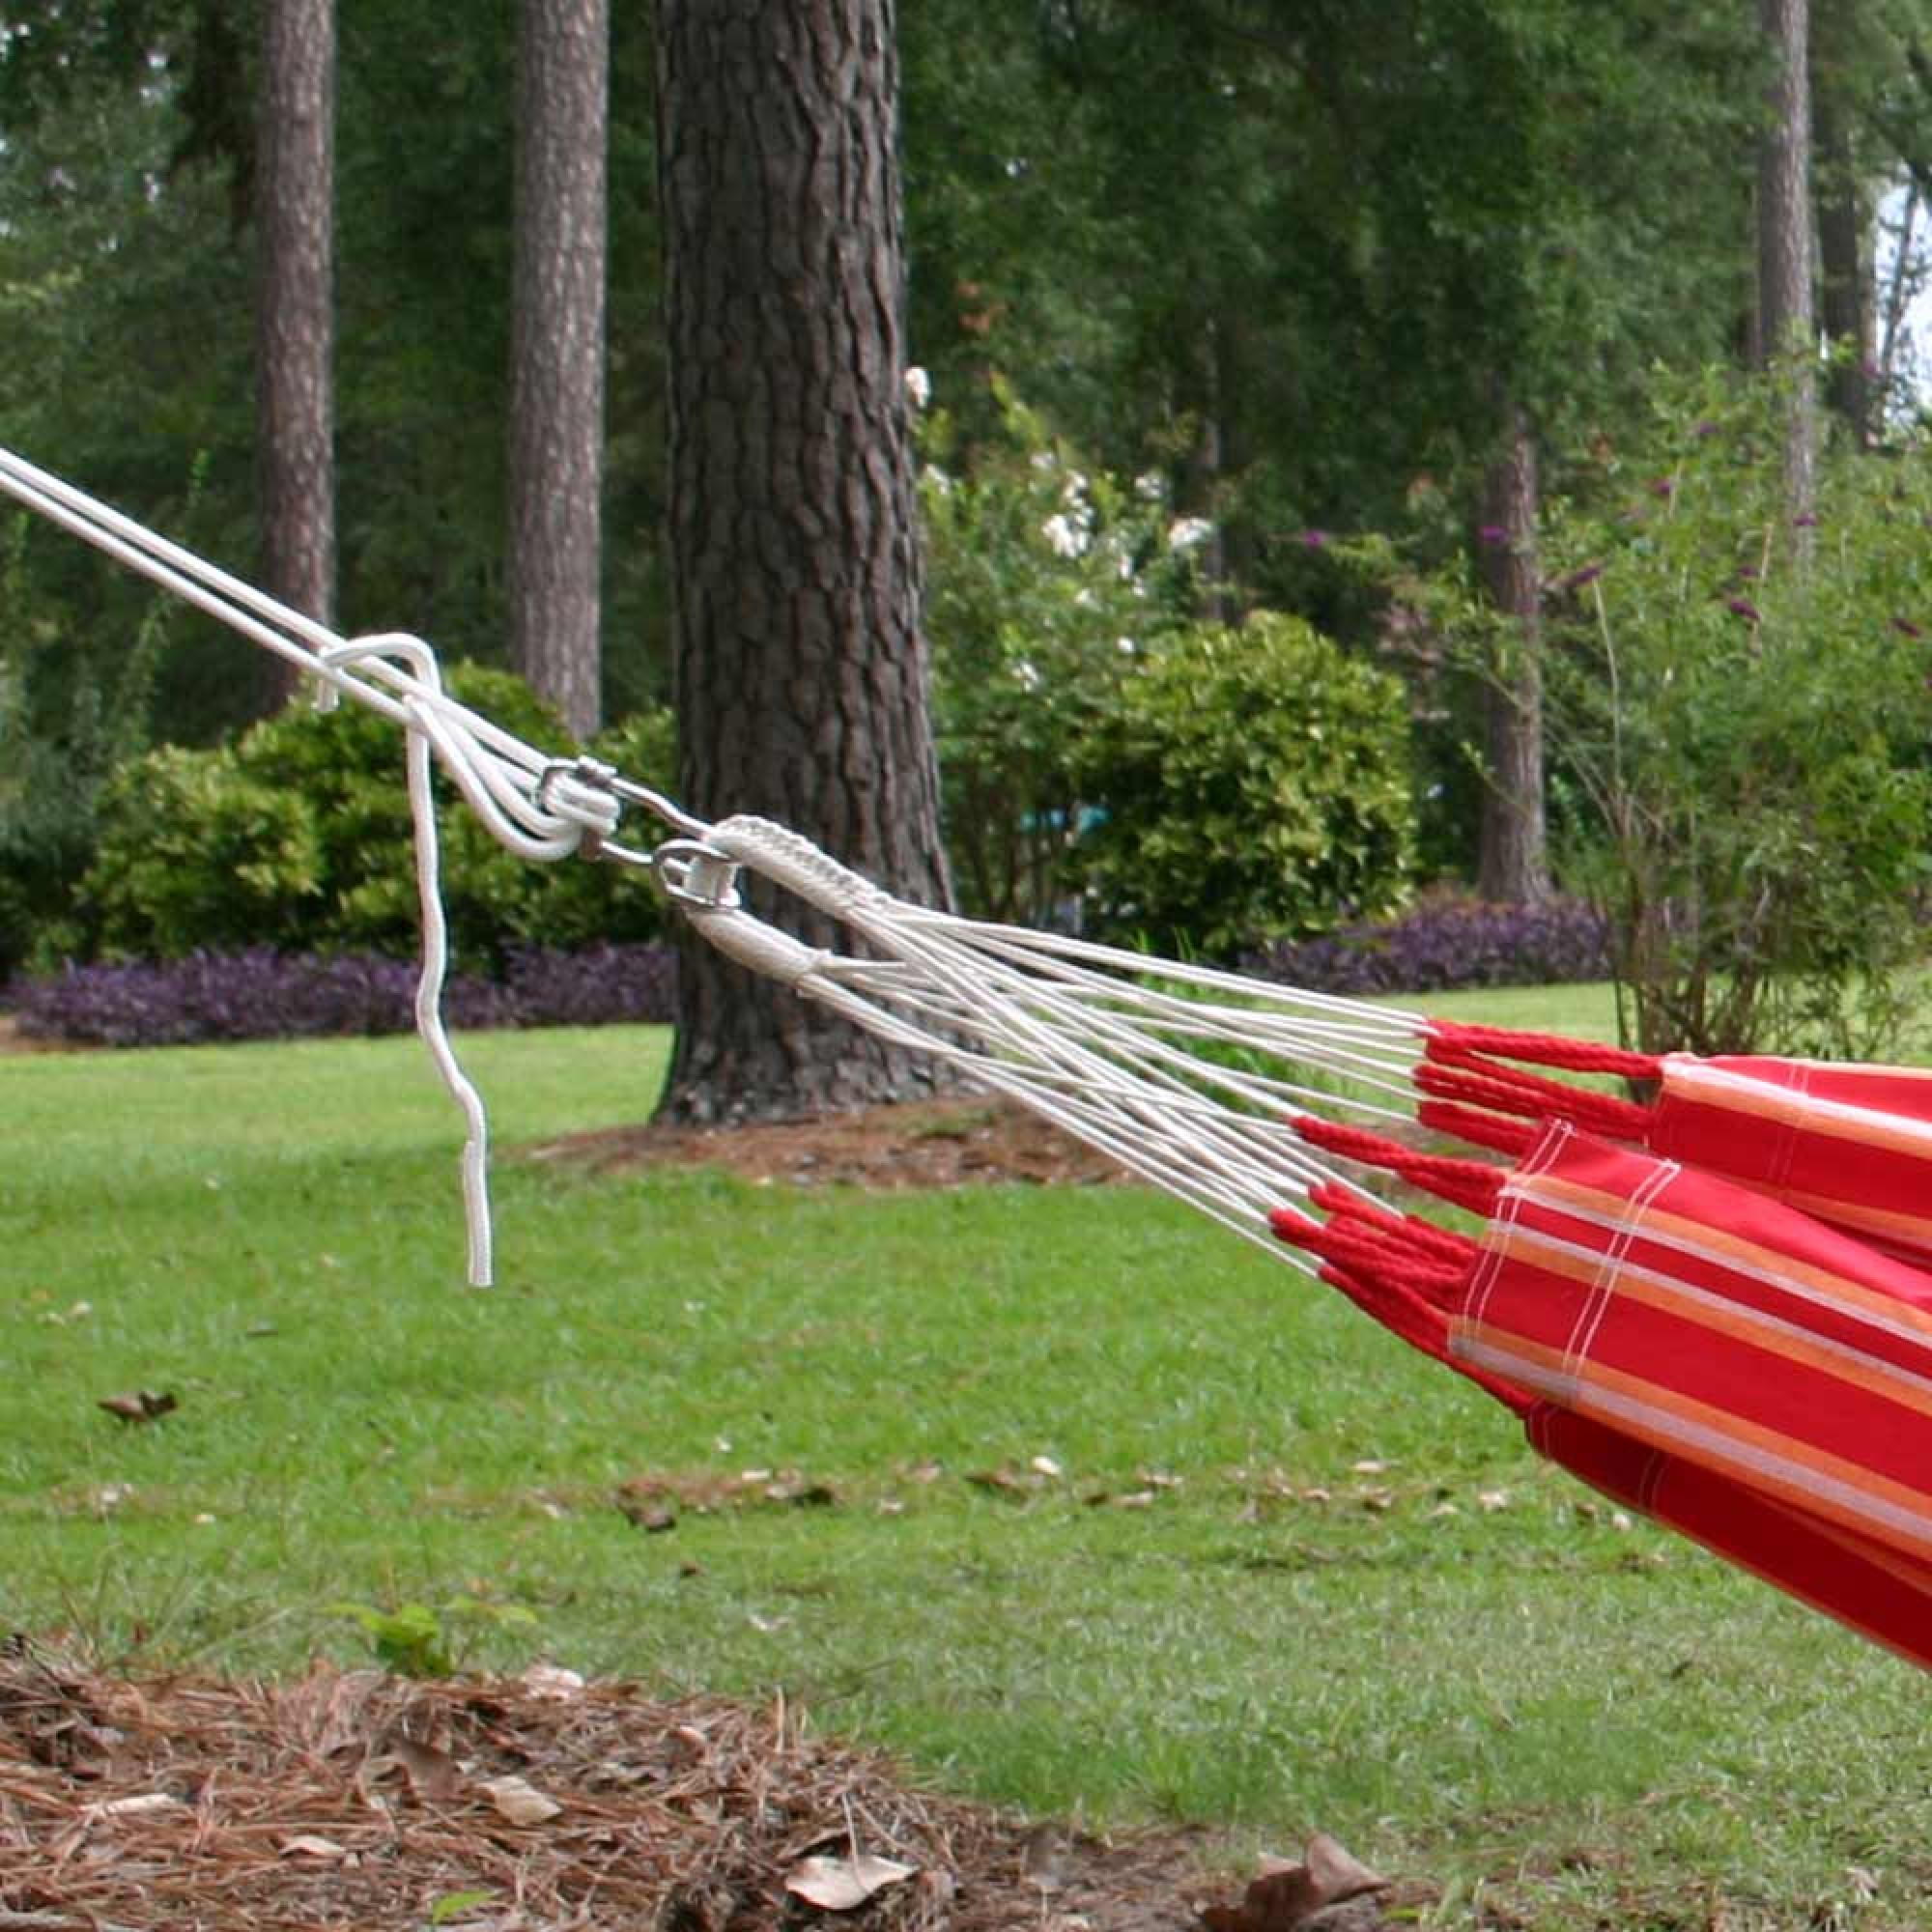 colombian hammocks or hsgl sunset s children on hchil stripe hammock dfohome xx by ftlr sale